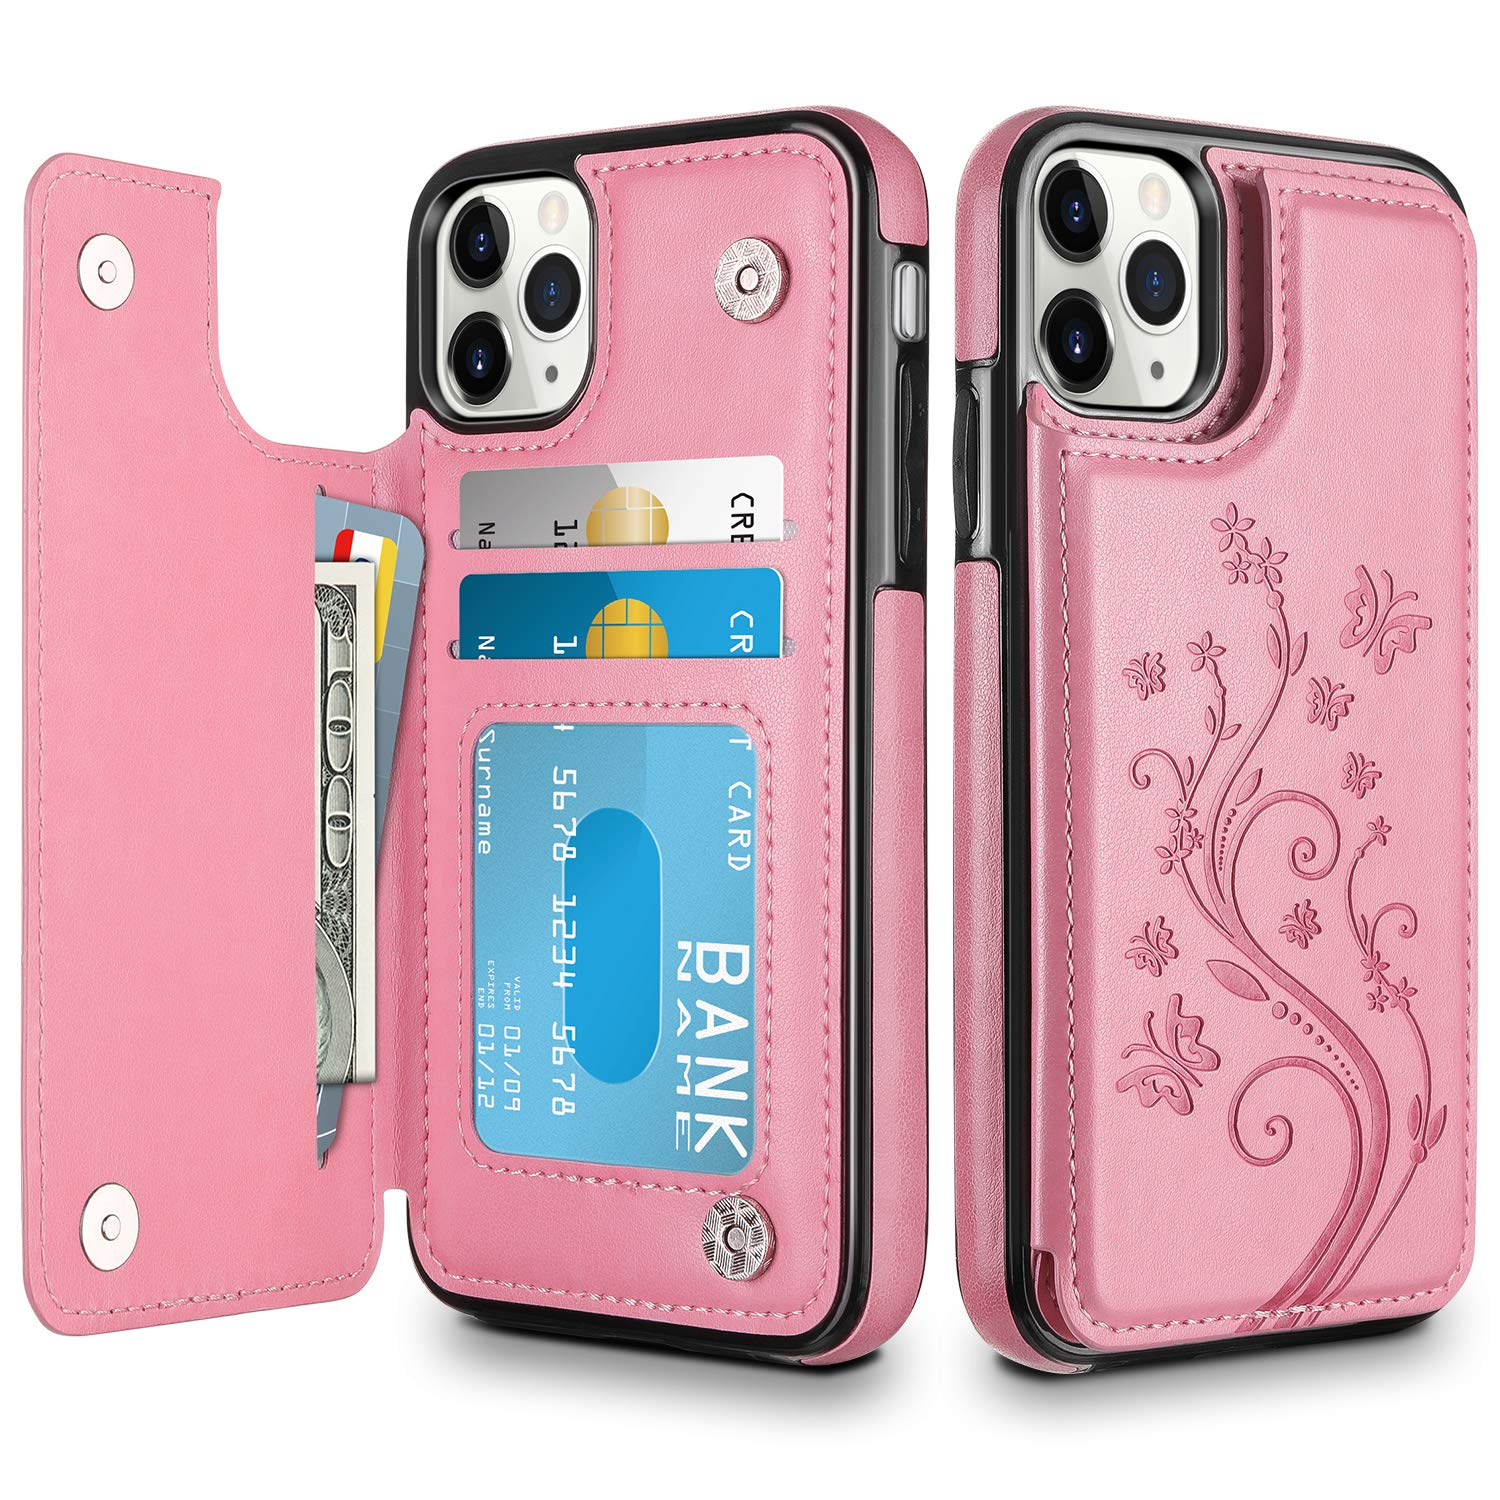 HianDier Wallet Case for iPhone 11 Pro Case Slim Protective Case with Credit Card Slot Holder Flip Folio Soft PU Leather Magnetic Closure Cover for 2019 iPhone 11 Pro 5.8 Inches, Pink